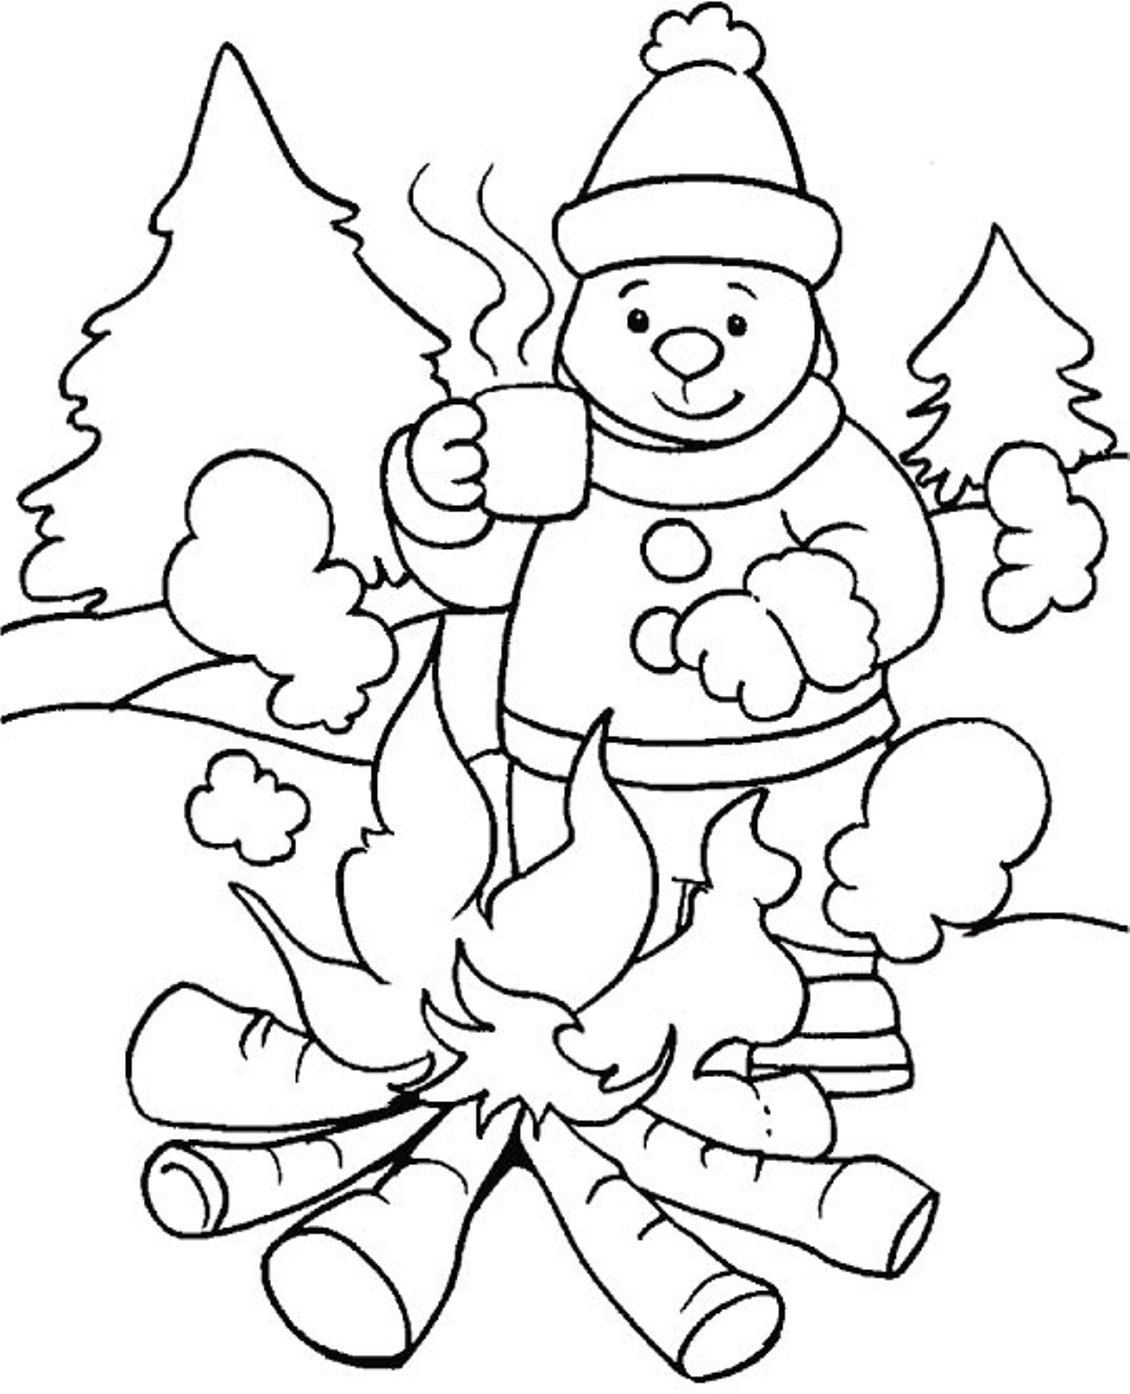 winter animal coloring sheets detailed winter coloring pages at getcoloringscom free coloring animal sheets winter